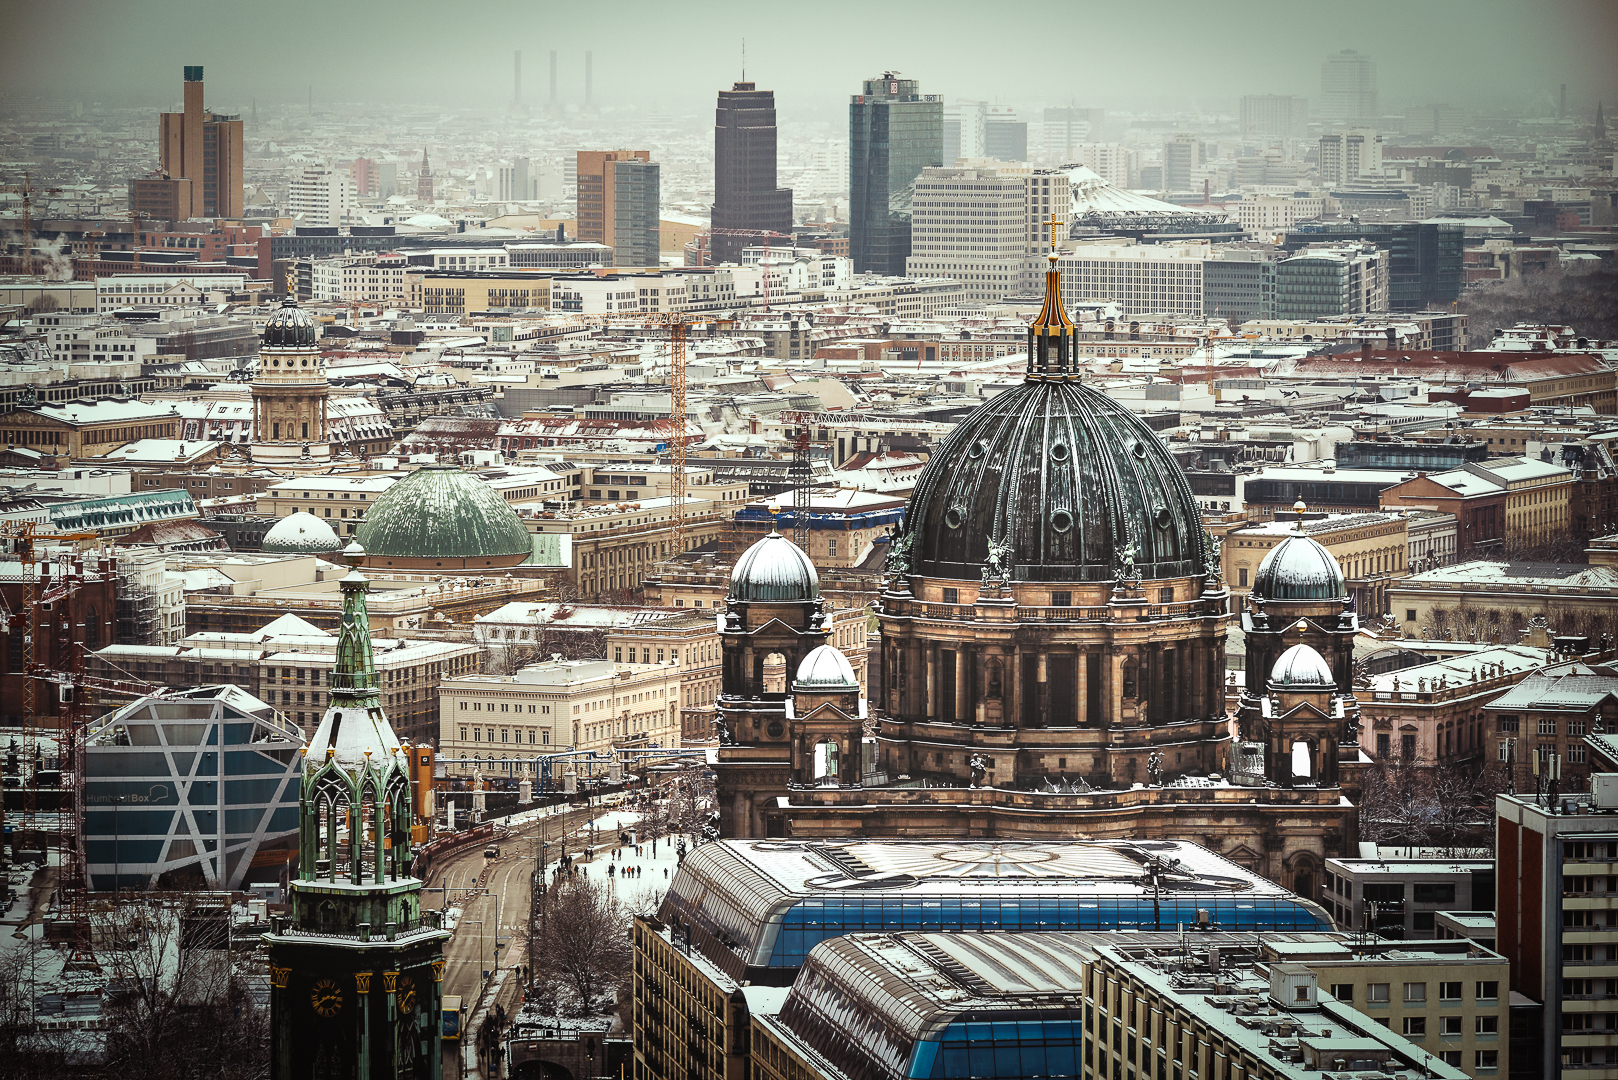 Berlin, Berliner Dom, Winter's Day, 2016, Skyline, panorama, Potsdamer Platz,